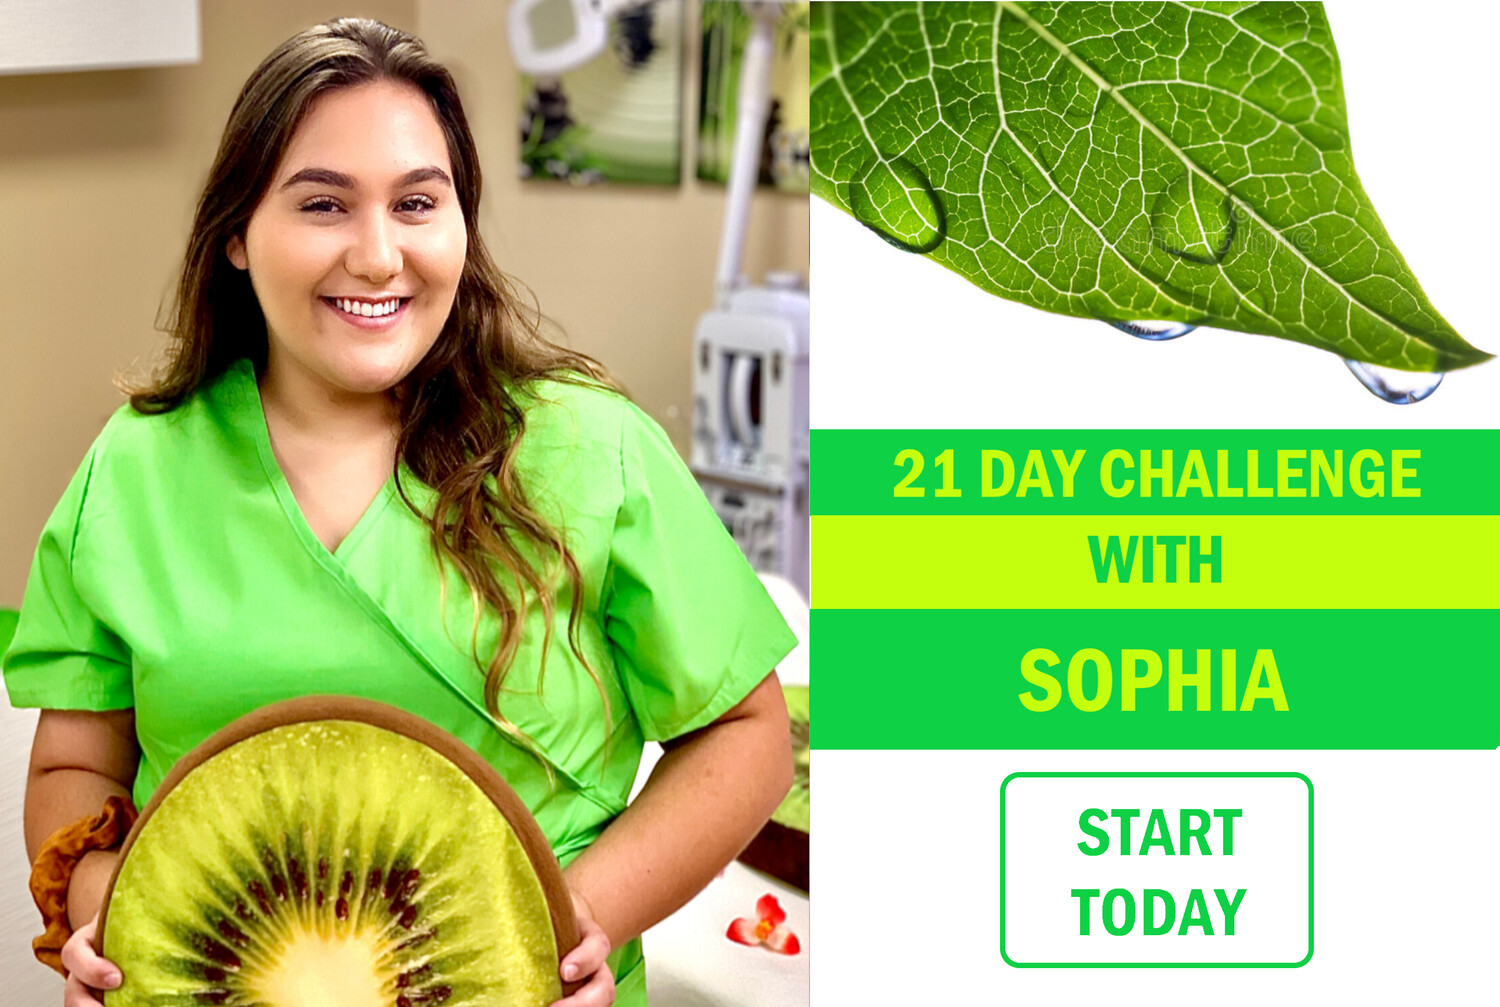 21 Day Challenge With Sophia